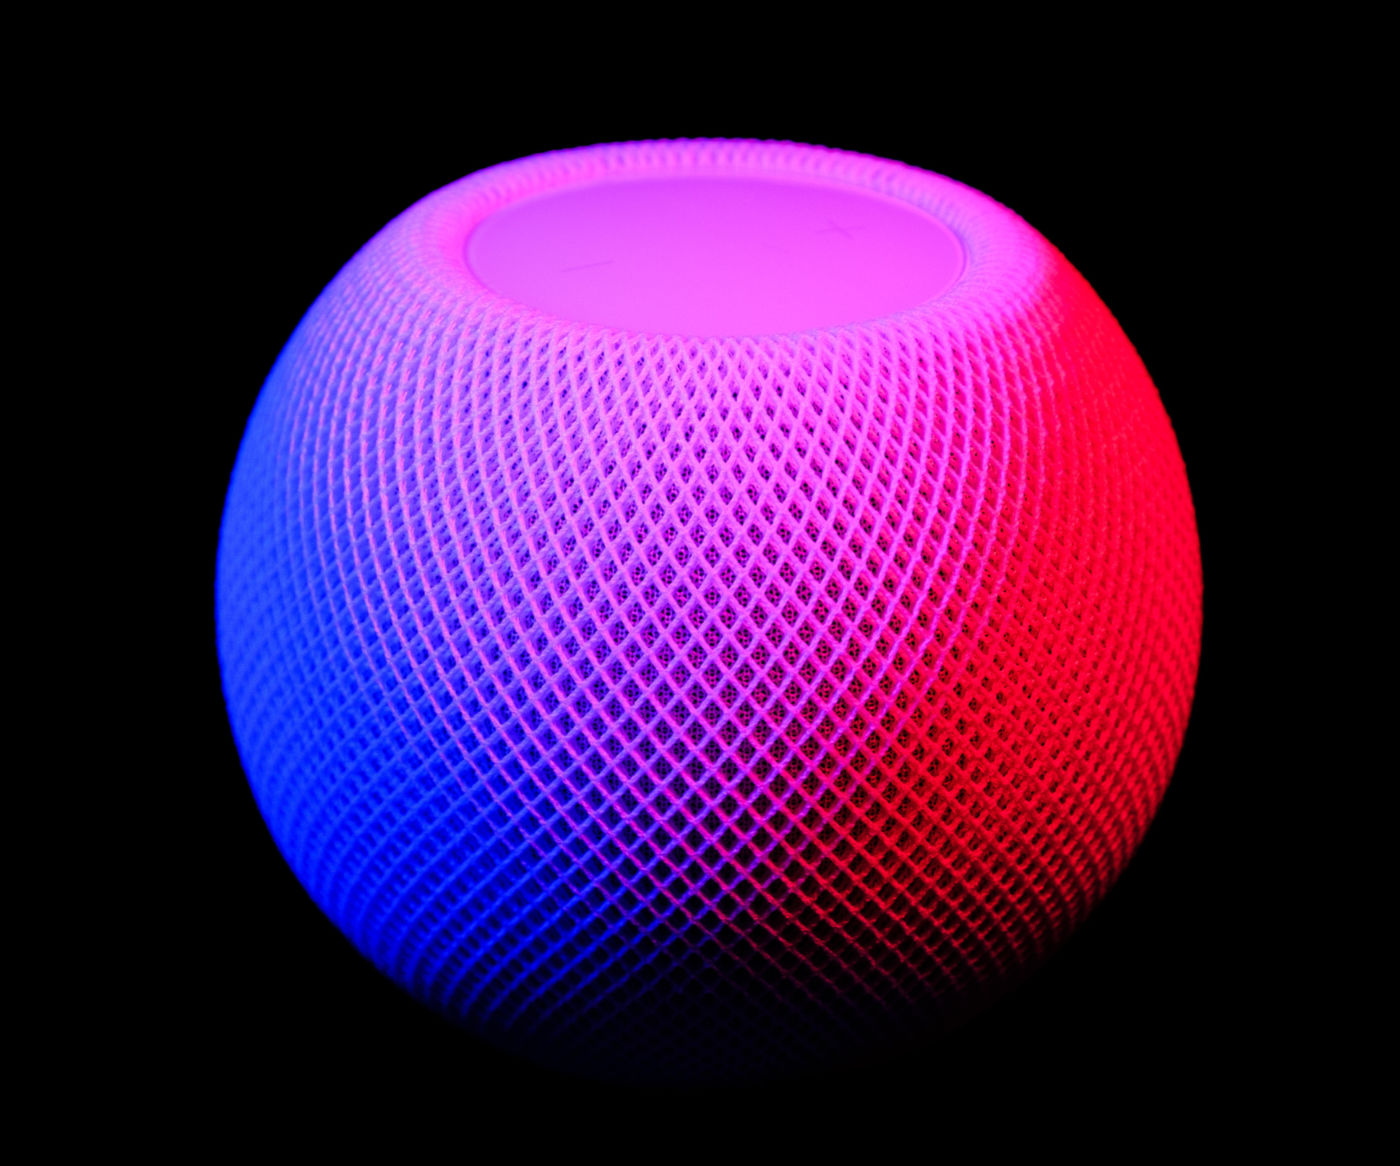 Appletv plus homepod